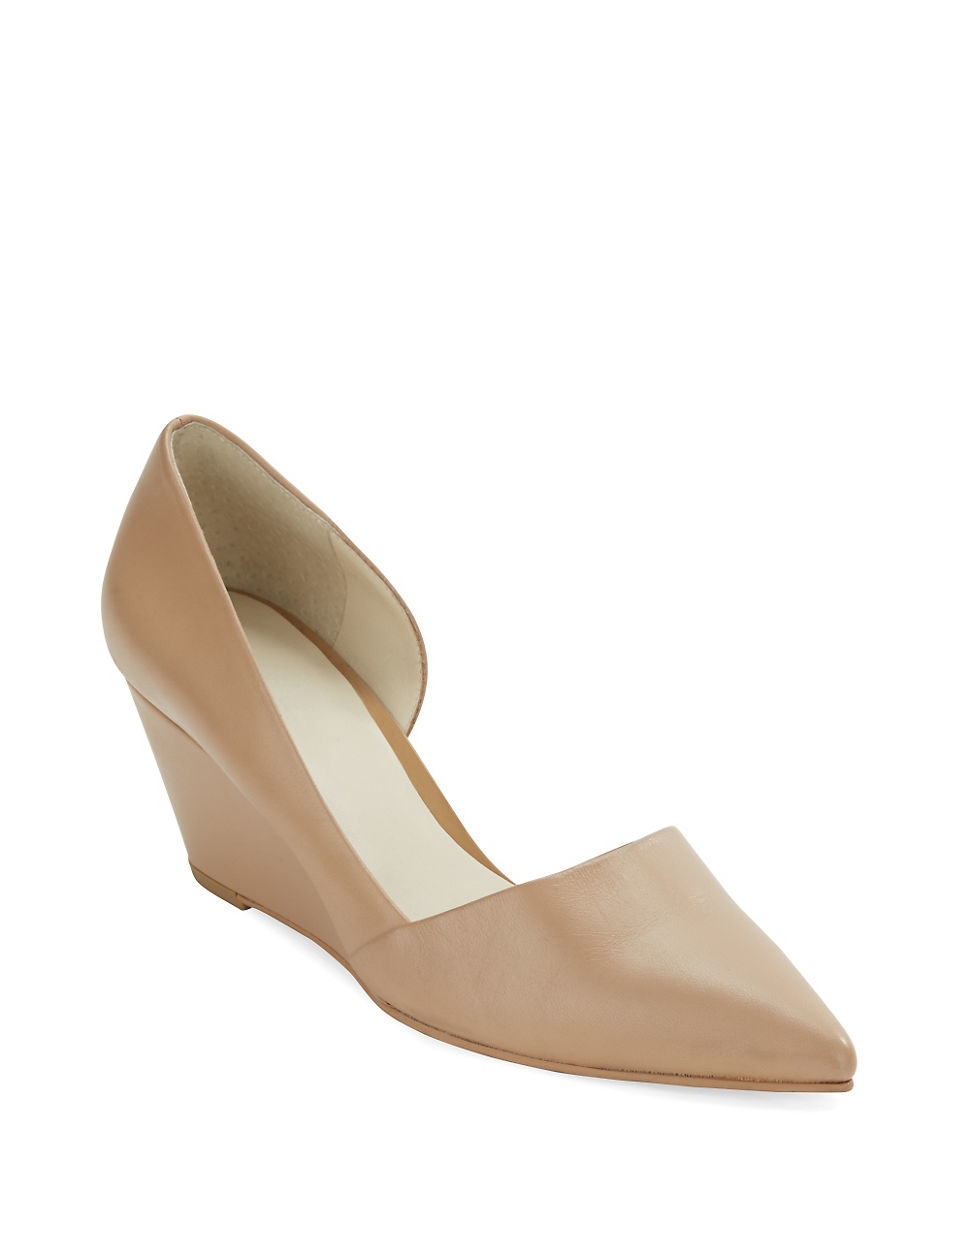 coles point women Shop women's shoes on sale at colehaancom and see our entire collection of sandals and wedges, oxfords, sneakers, heels and boots on sale cole haan.